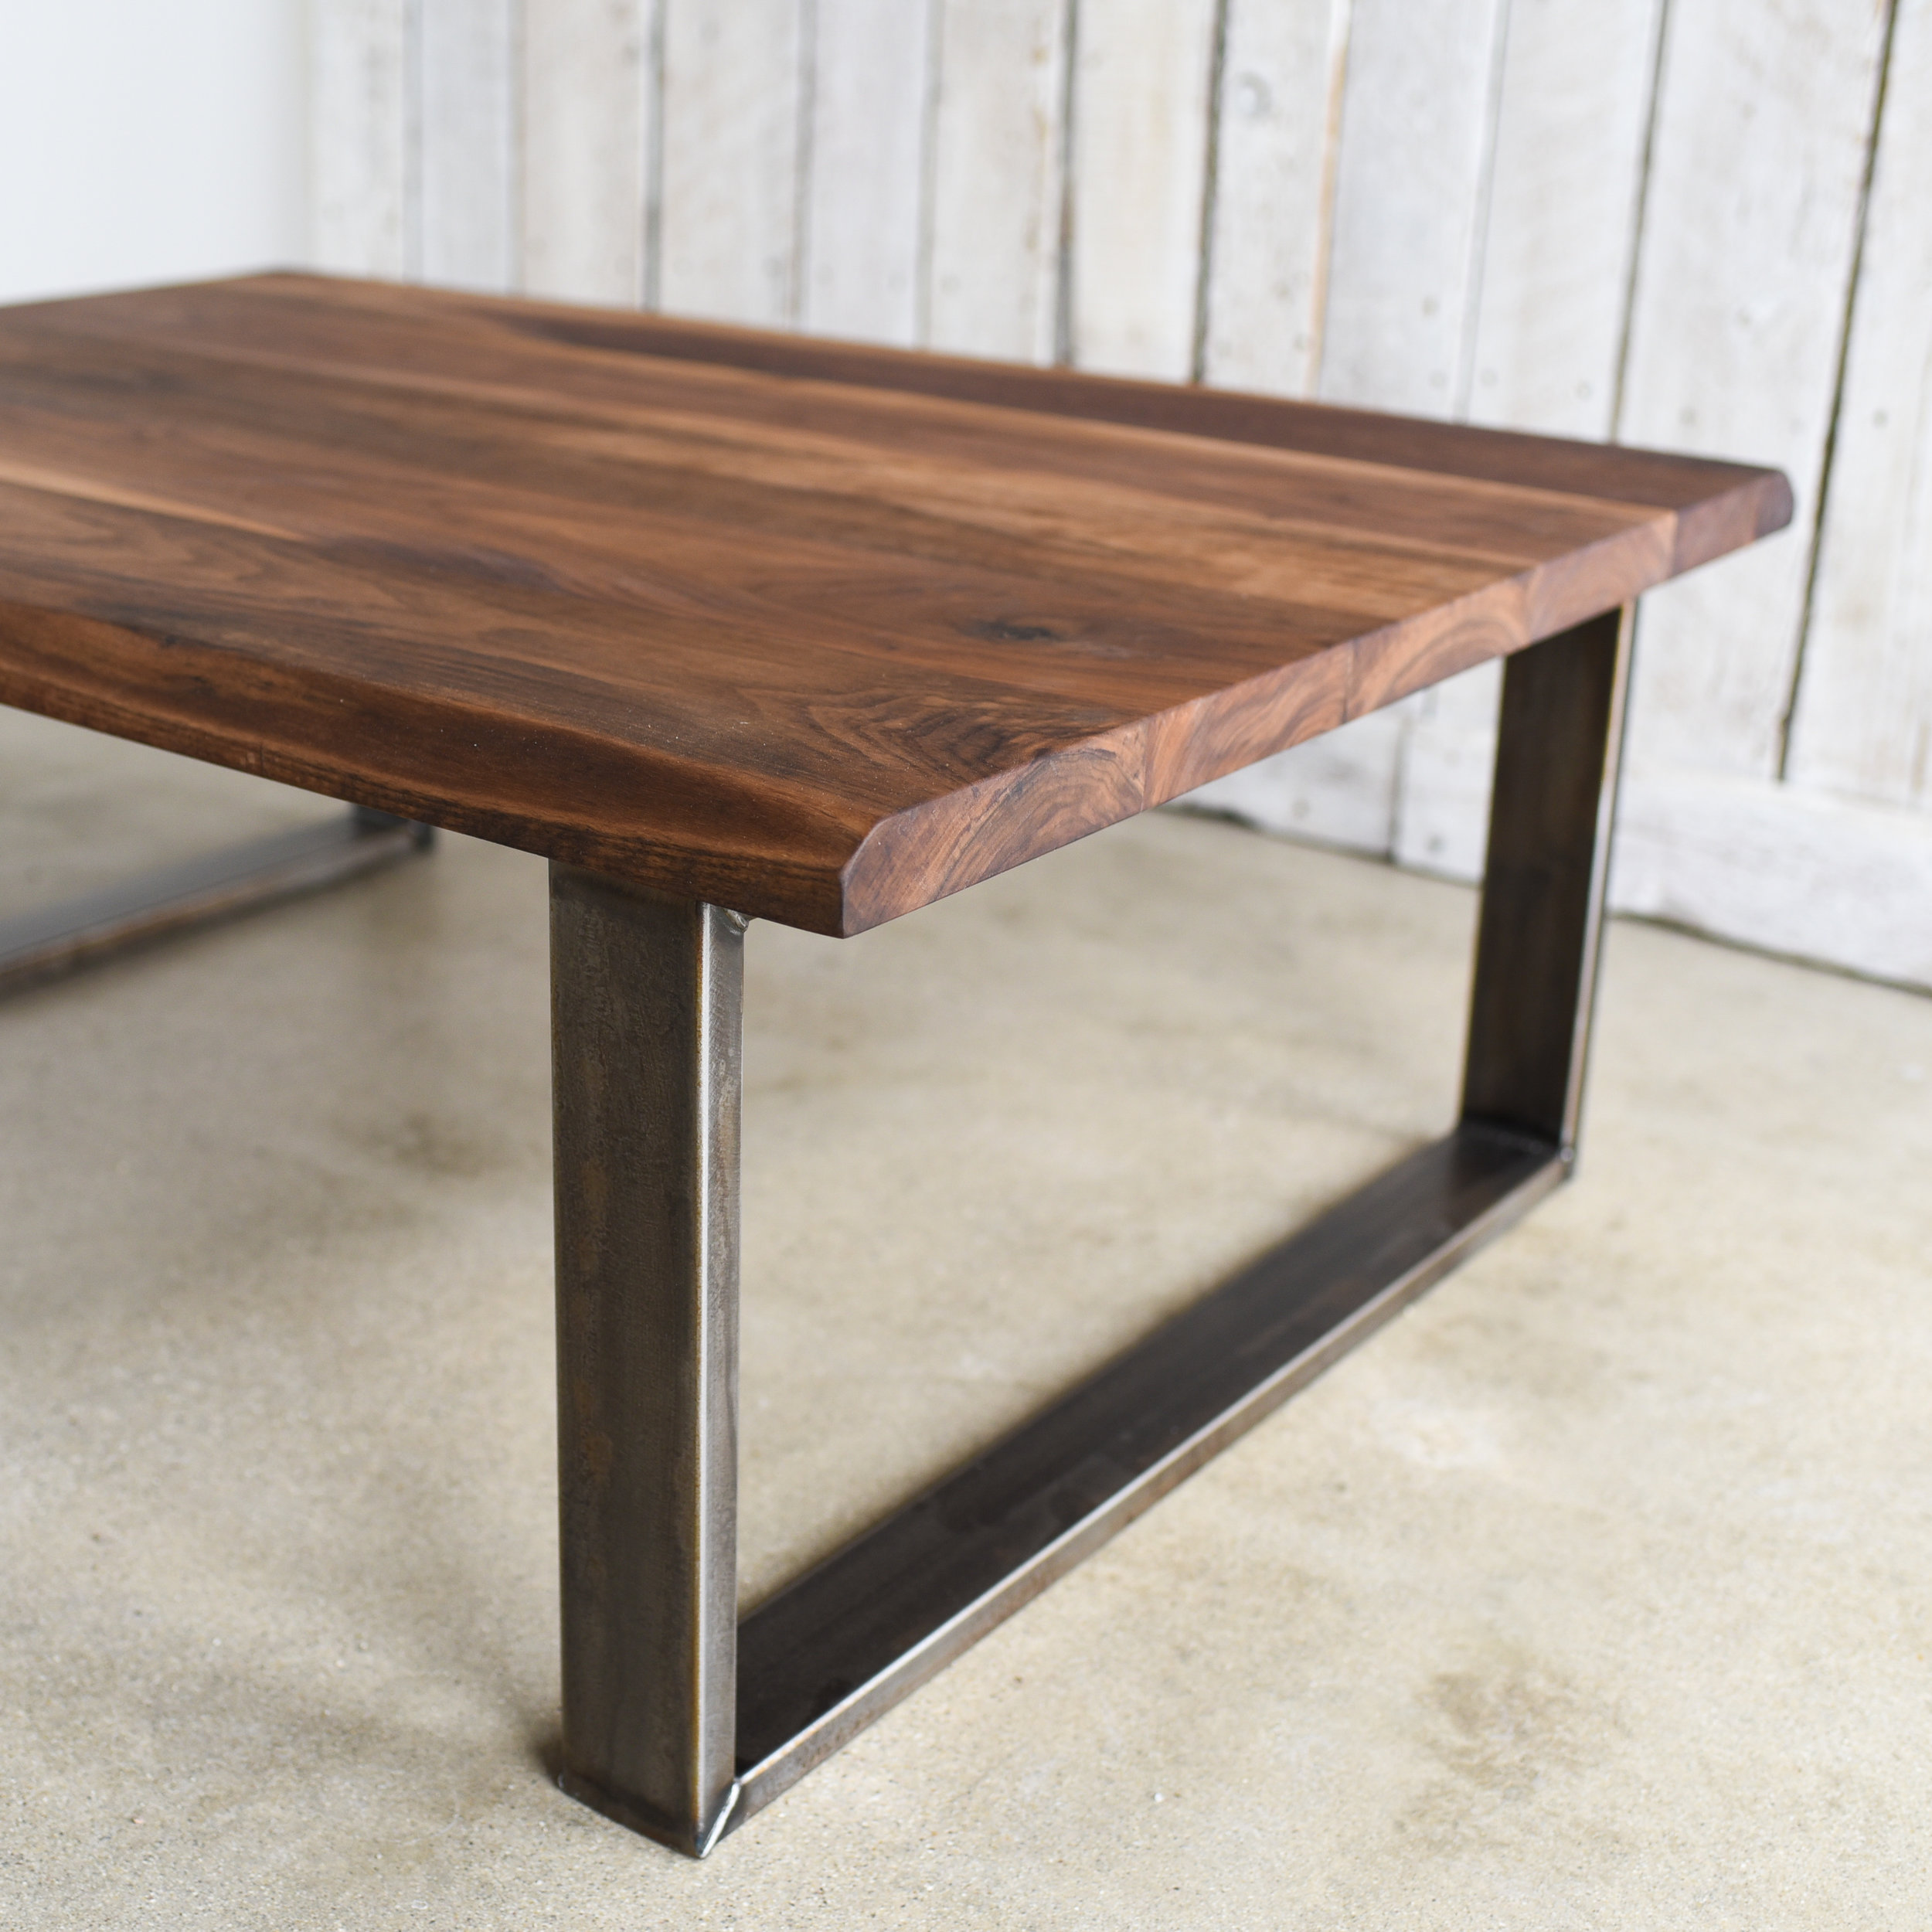 Walnut Live Edge Coffee Table Industrial U Shaped Steel Legs